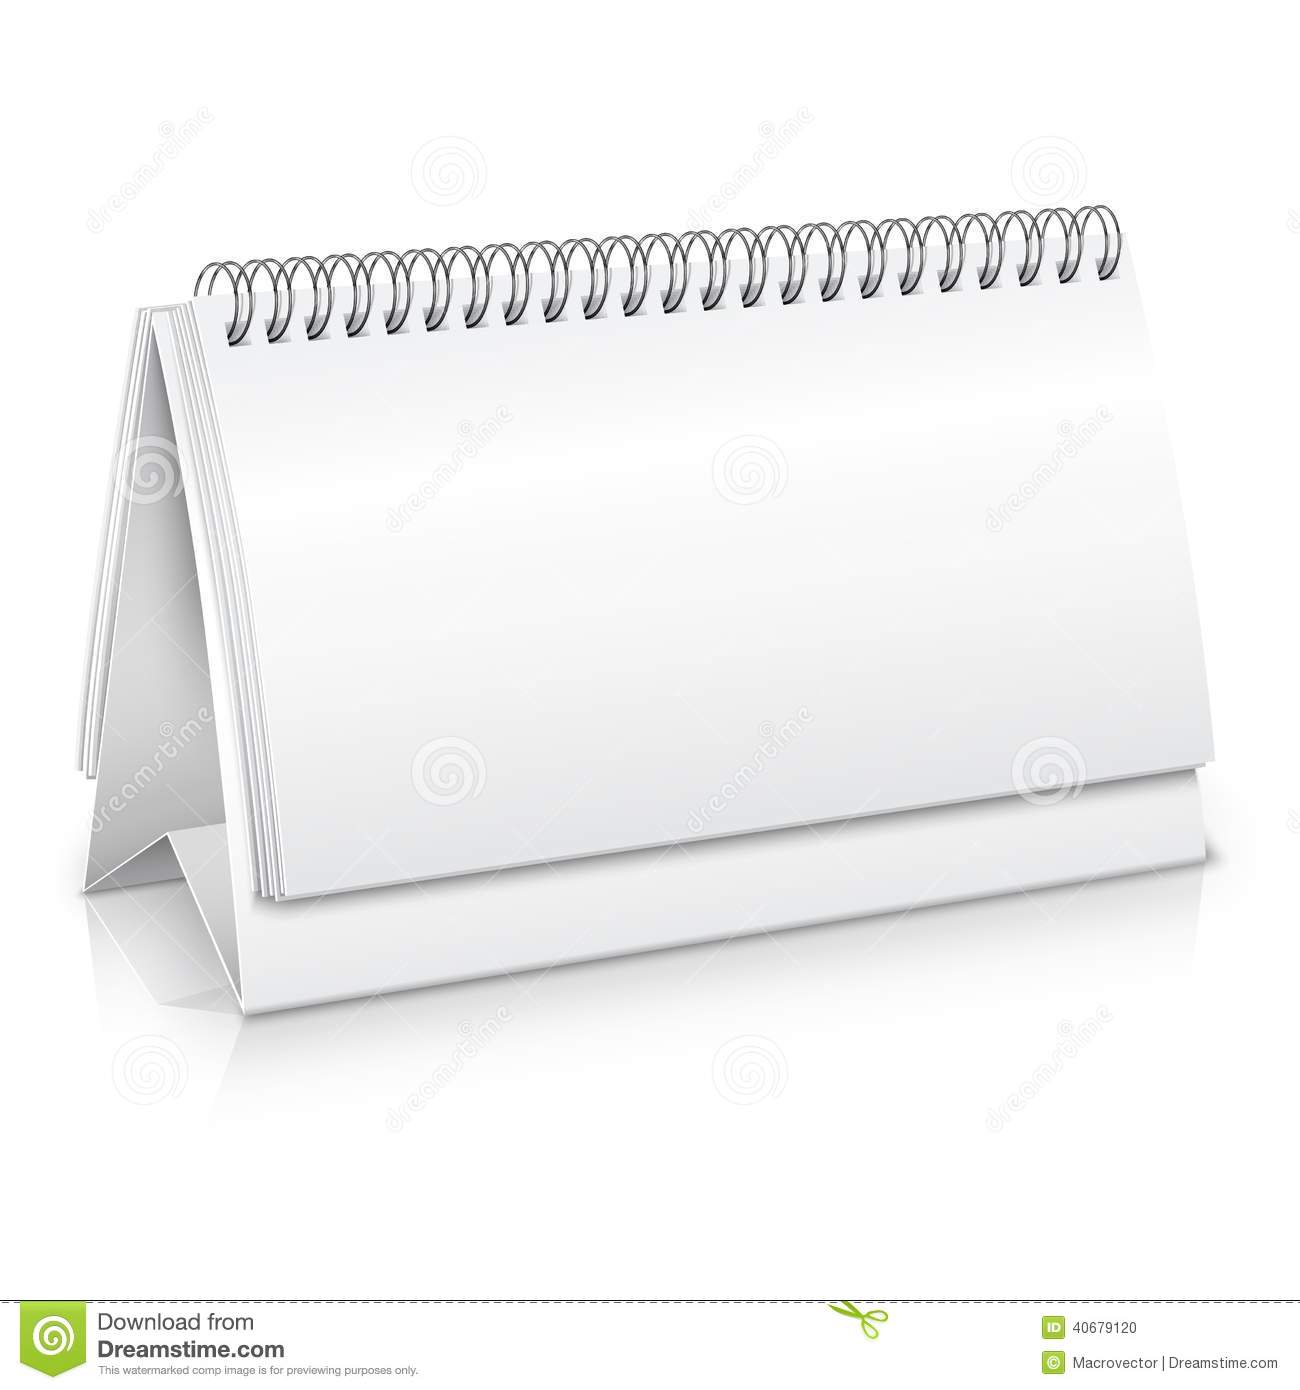 Desk Calendar Mockup Stock Vector Image Of Decorative